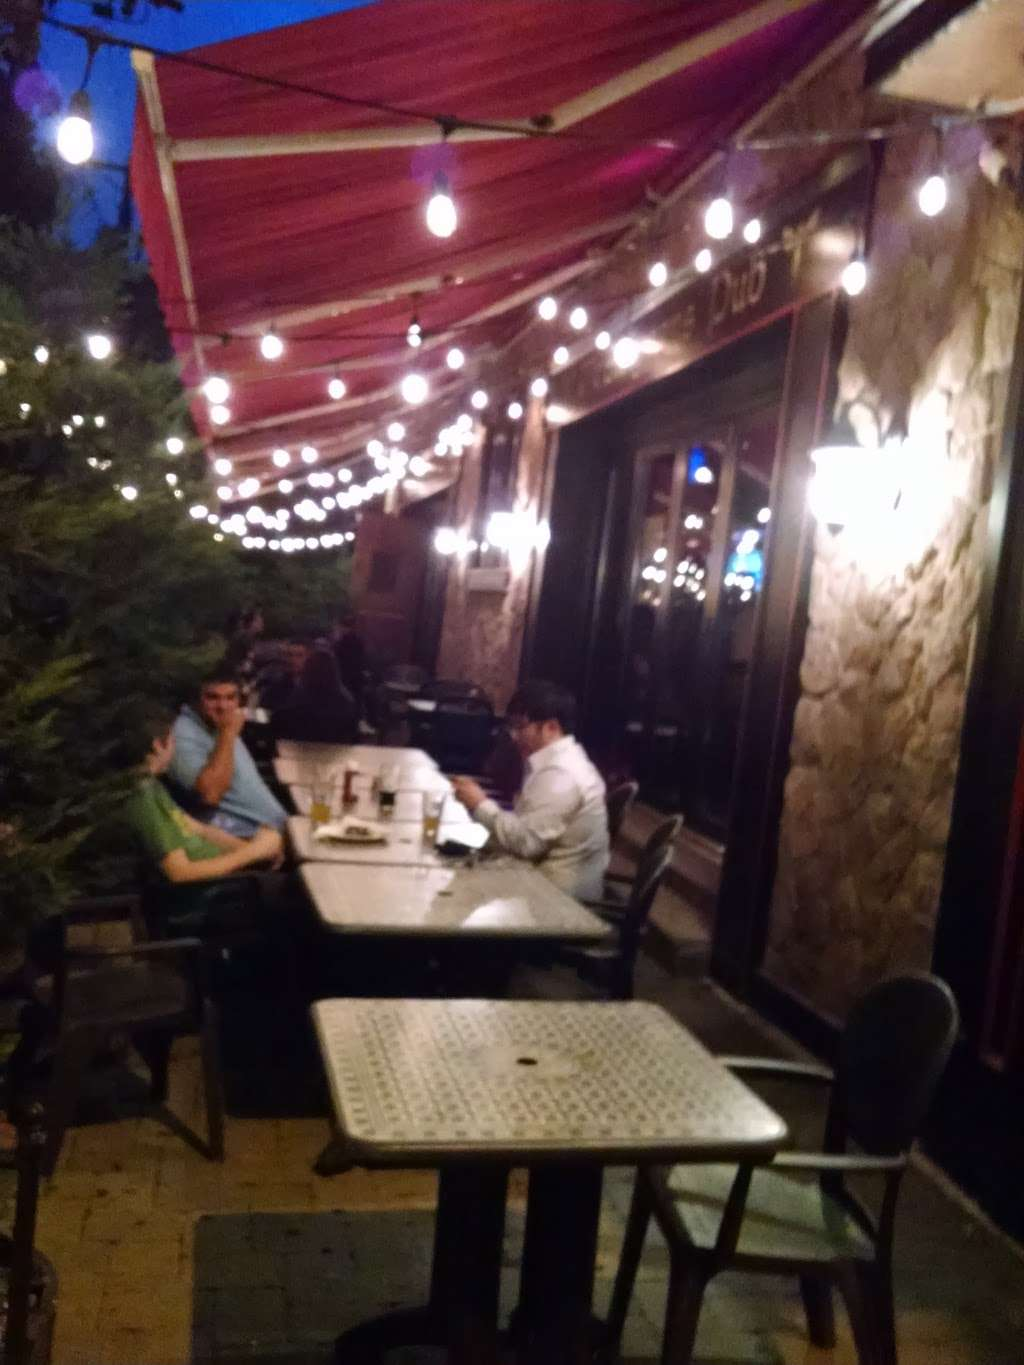 McSwiggans Pub - restaurant  | Photo 6 of 10 | Address: 110 1st St, Hoboken, NJ 07030, USA | Phone: (201) 798-6700